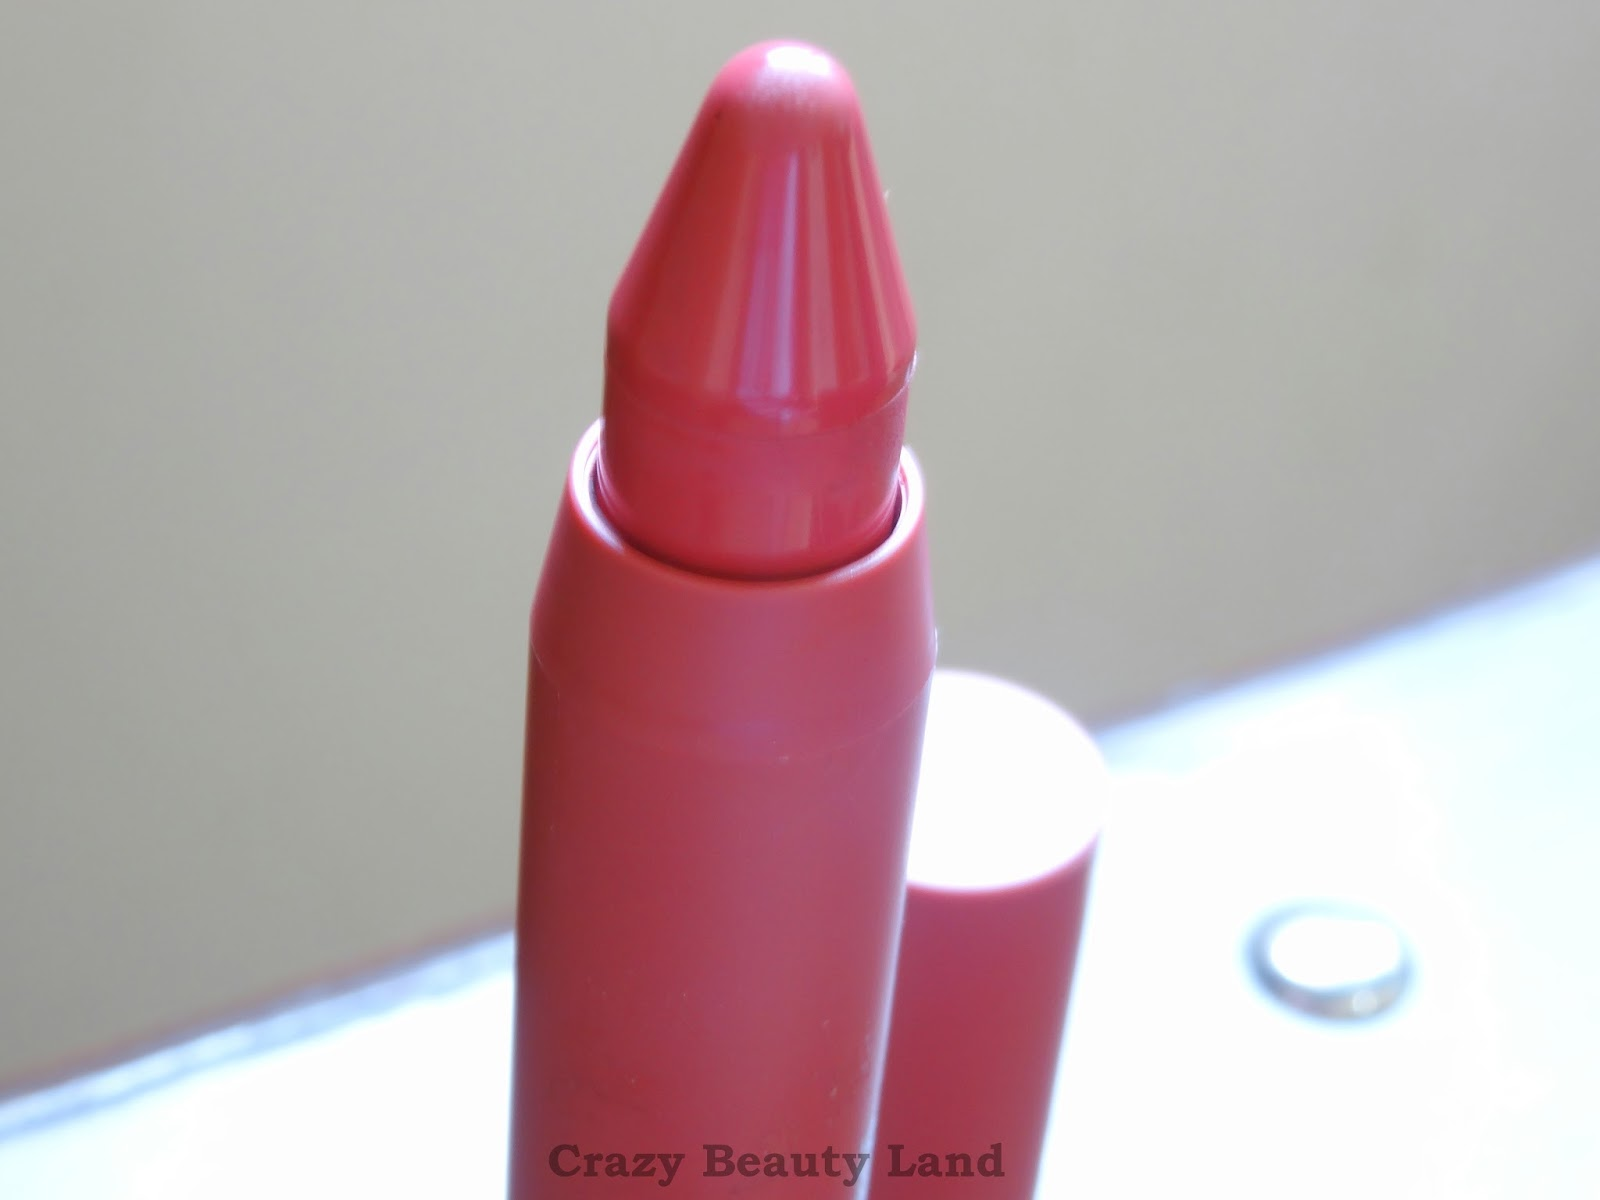 Revlon Colorburst Matte Balm in Sultry 225 in India Review Swatches